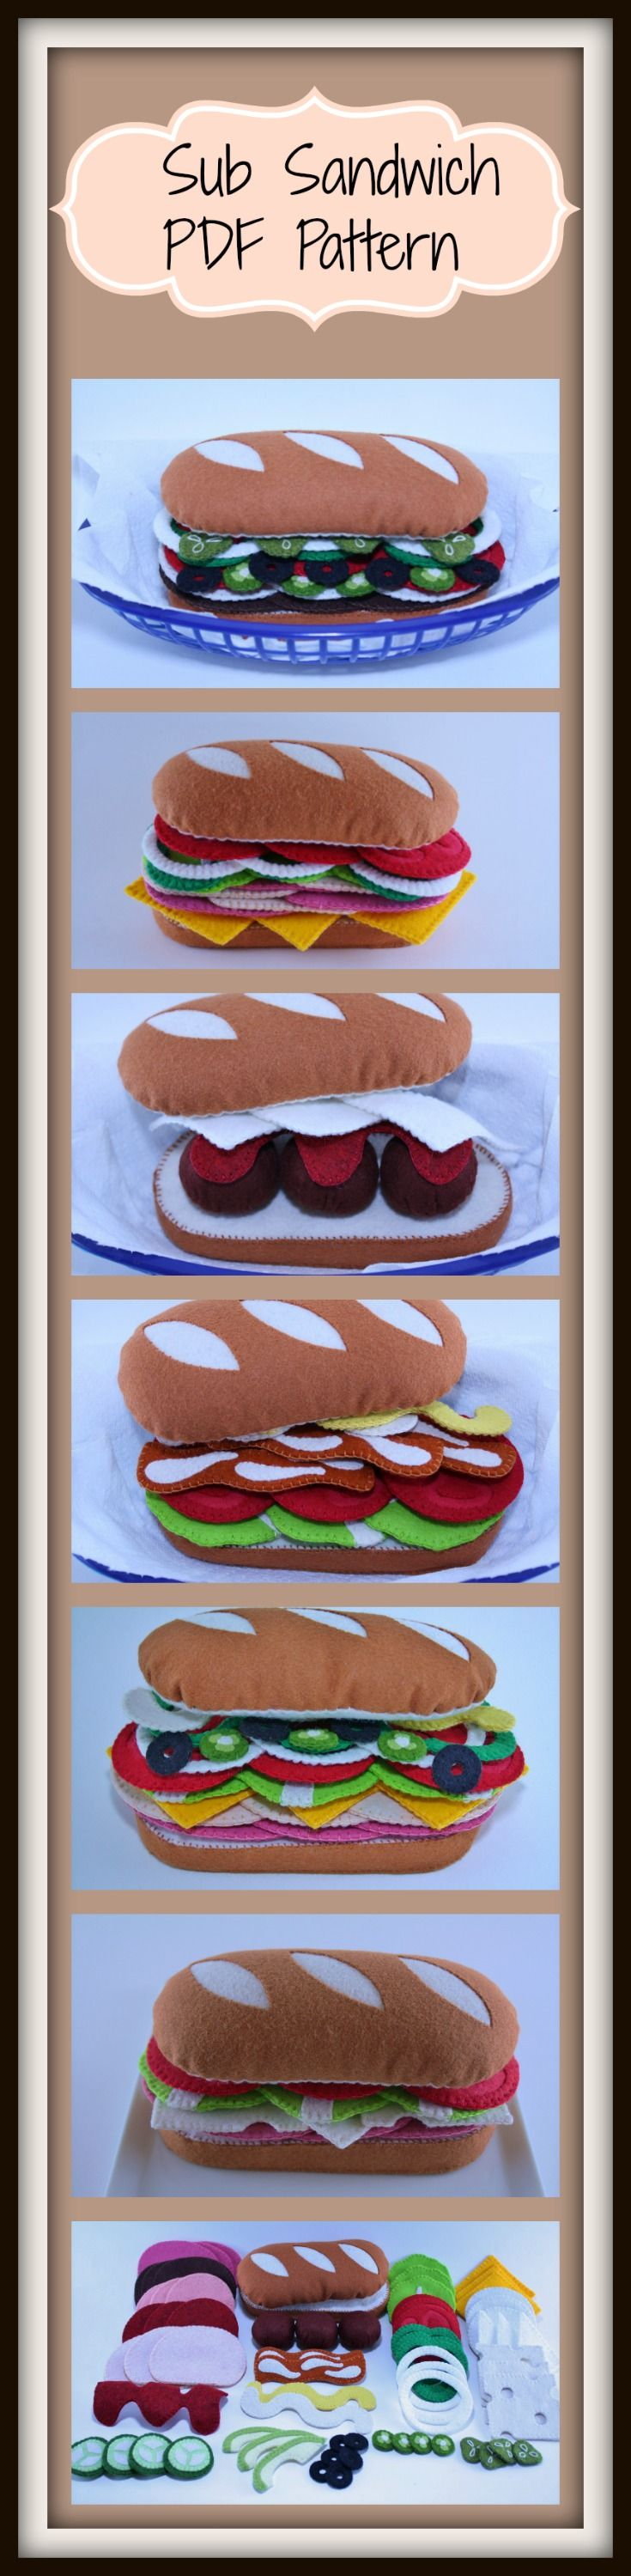 Sub Sandwich instant download PDF pattern available at www.etsy.com/shop/patternplanetshop